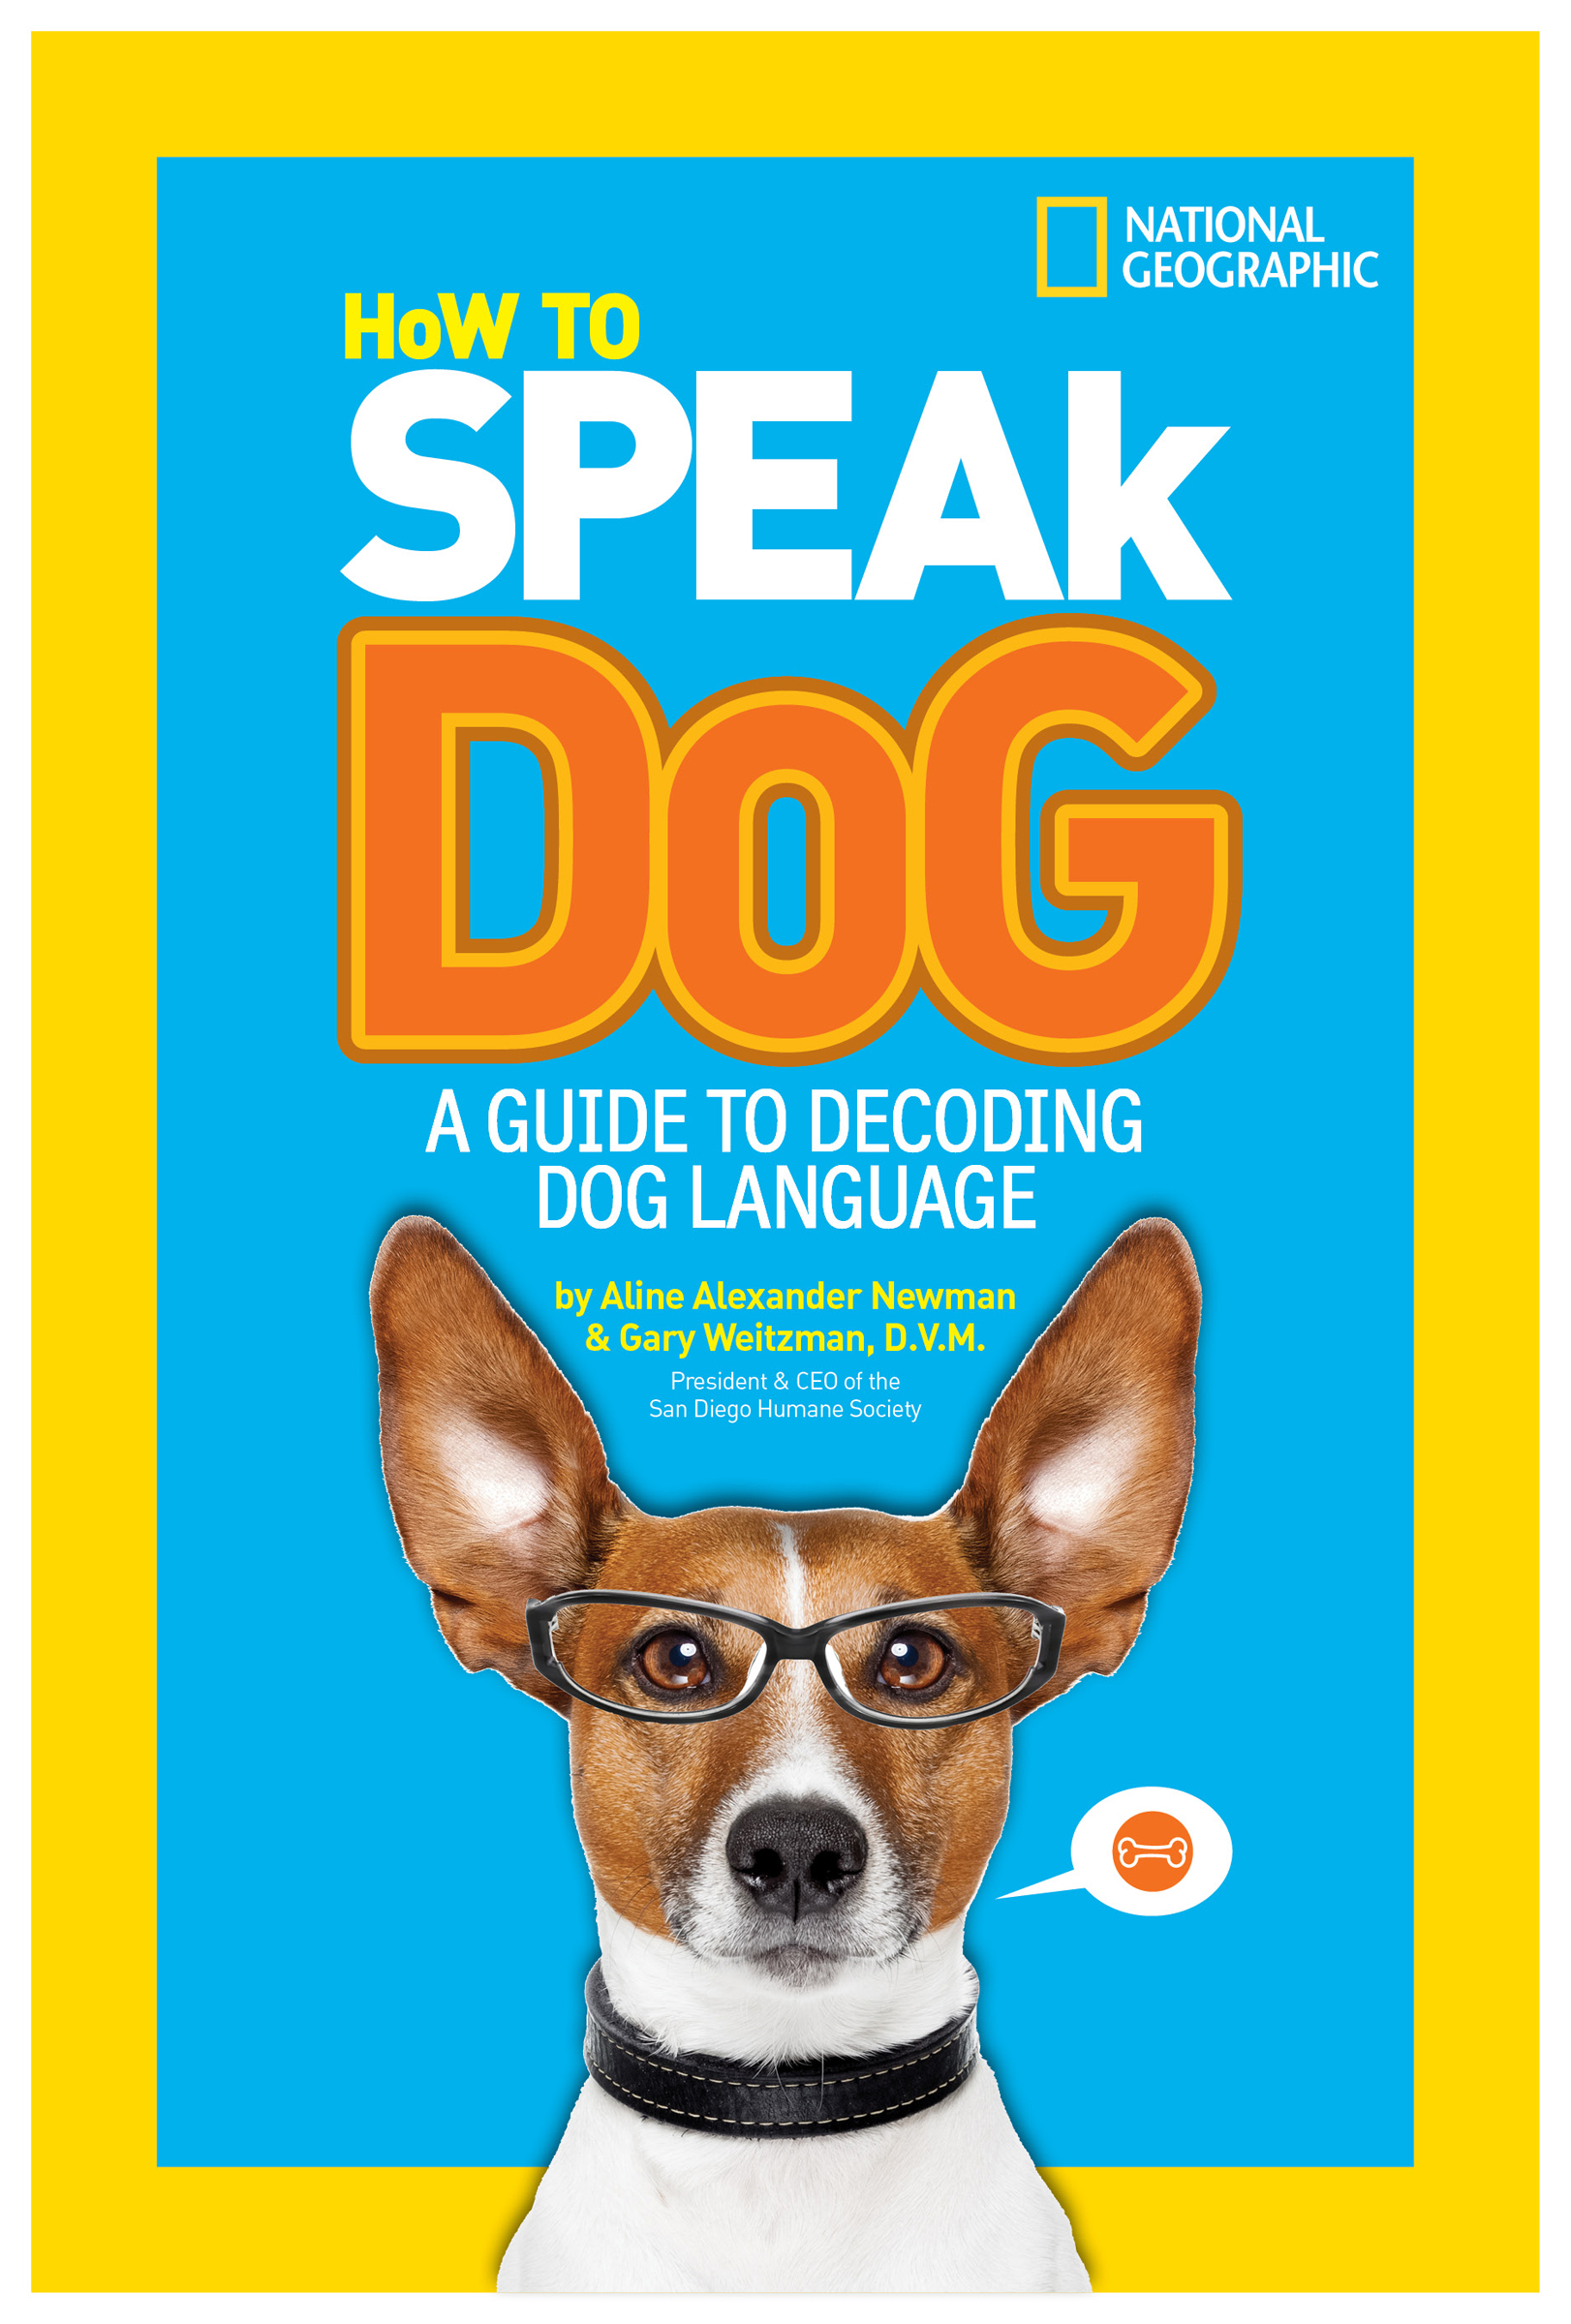 National Geographic Kids - How to Speak Dog - MKB Birthday Party Giveaway